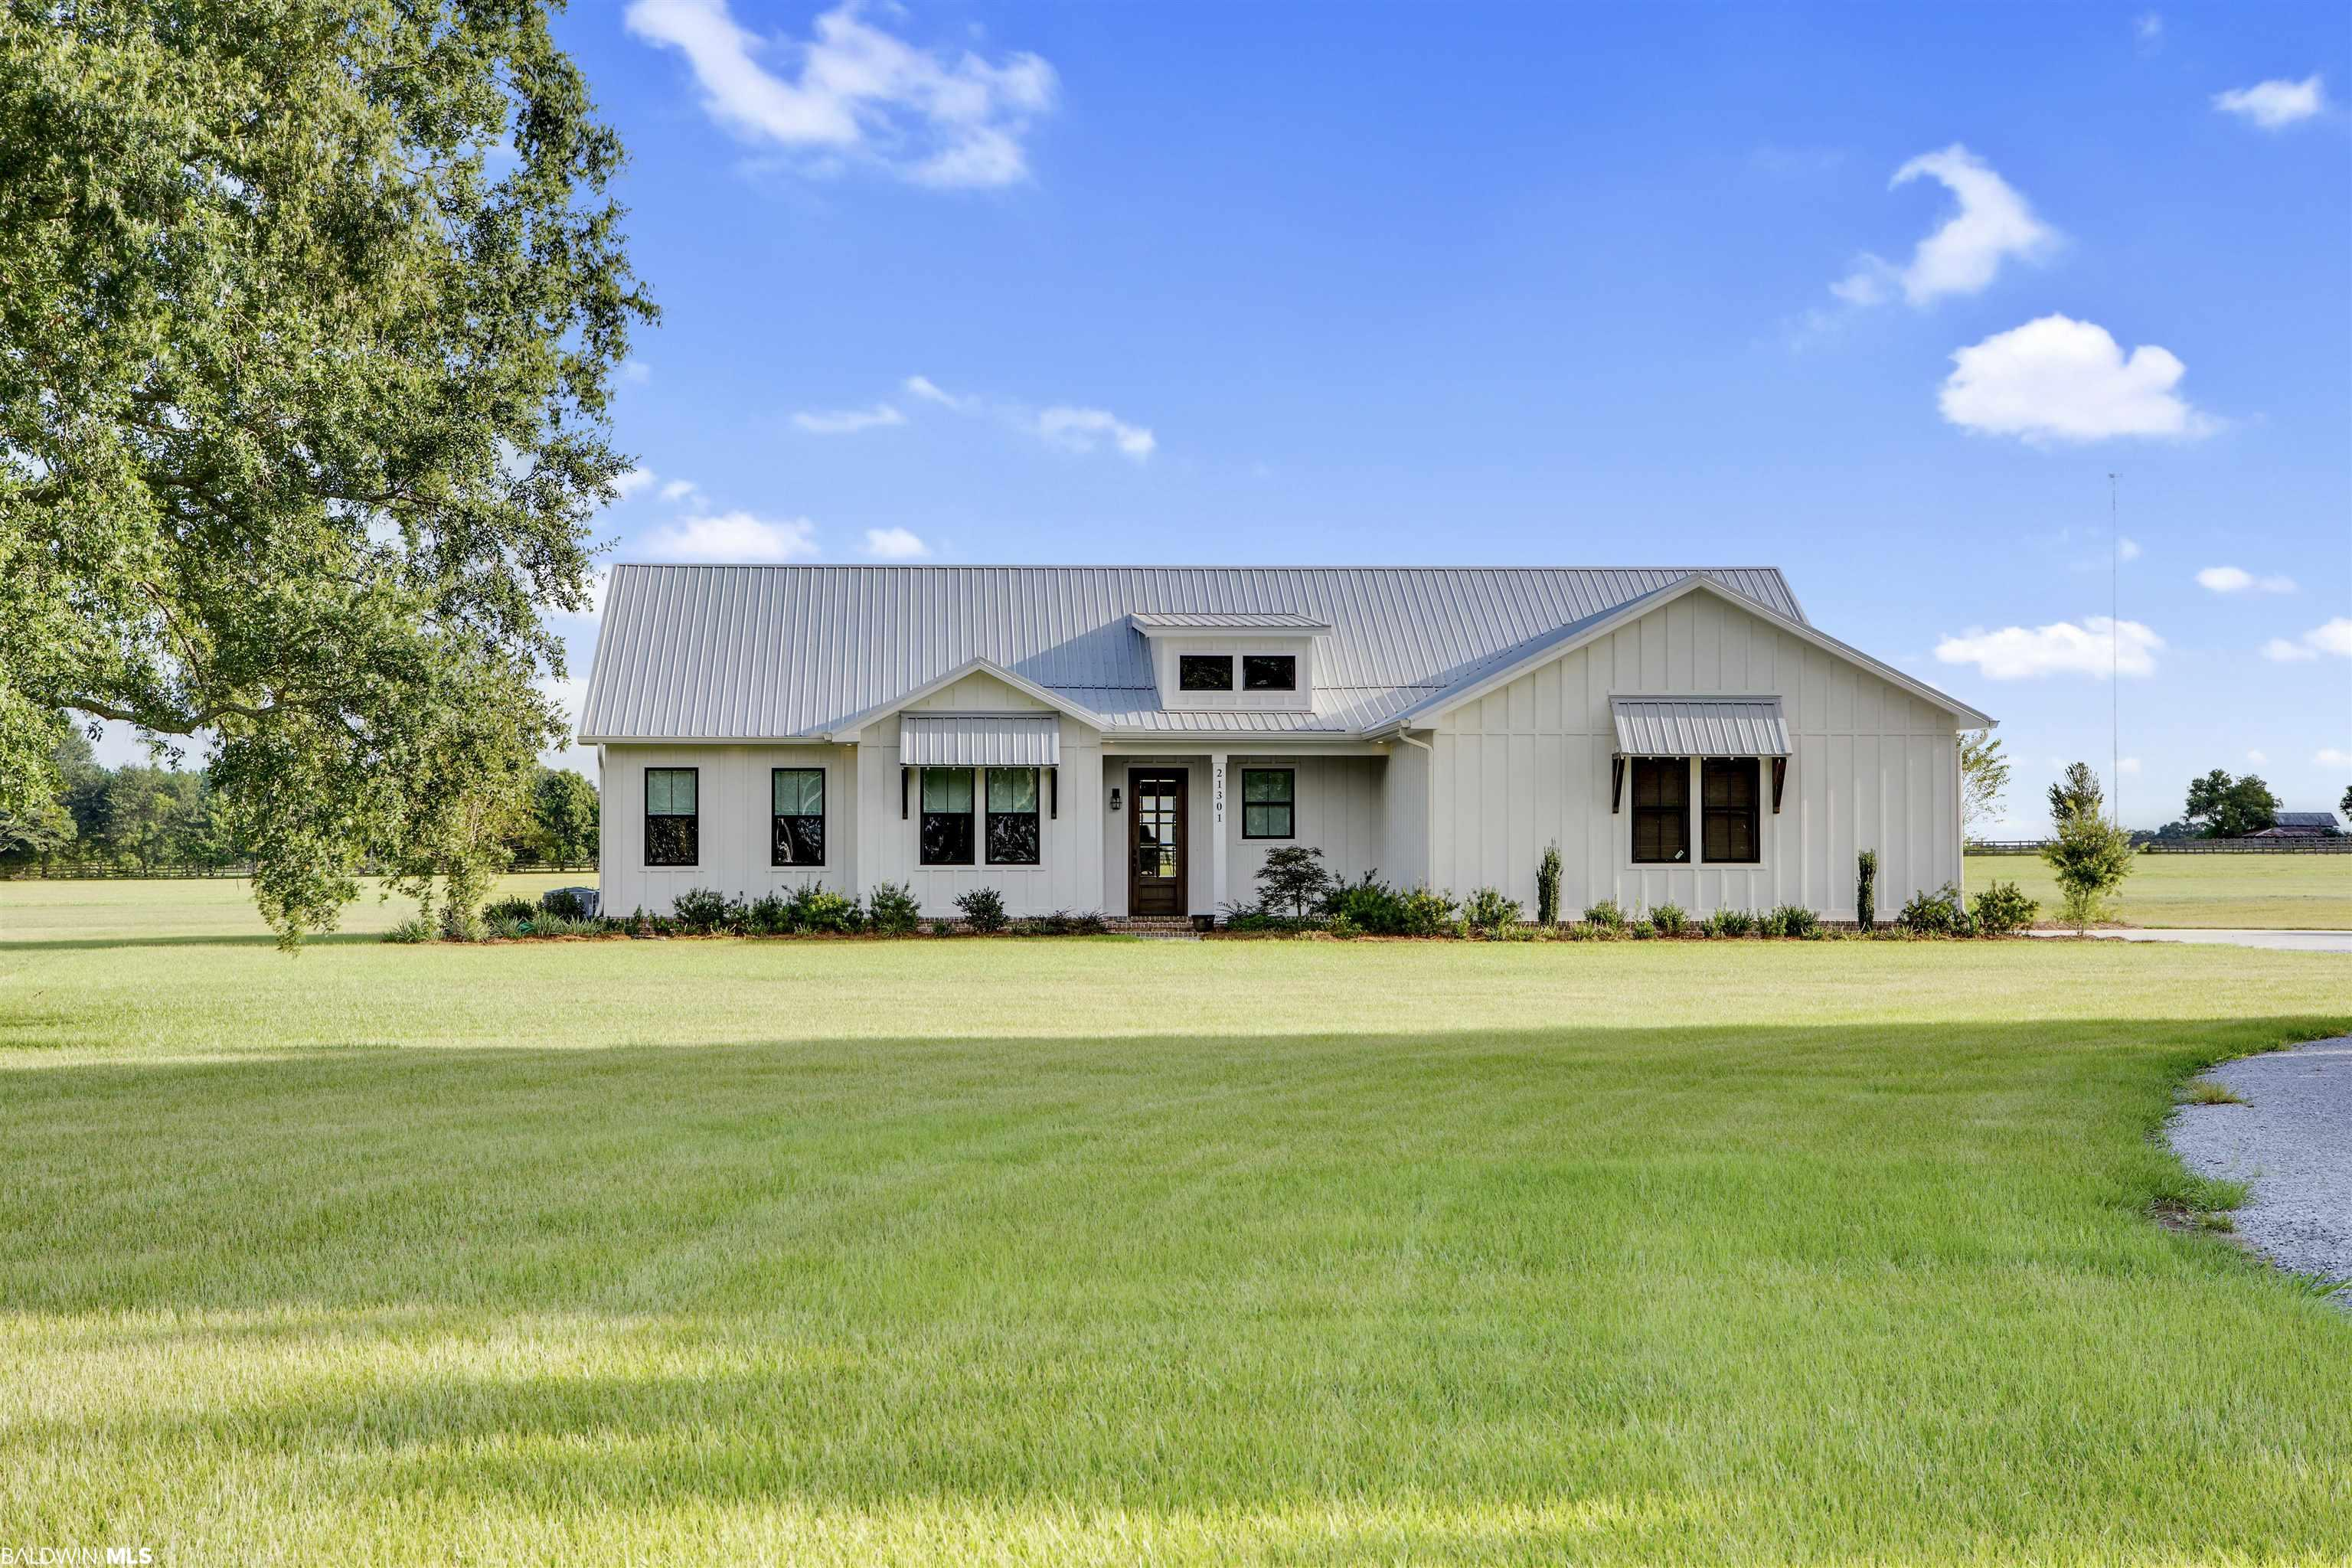 Welcome home to this Gold Fortified new construction farmhouse nestled on fenced 20 acres with plenty of room to expand. This 2856 sq. ft. 4 Bedroom 3.5 Bathroom split floorpan home has expansive bedrooms, bathrooms and walk in closets. As you walk in through the solid wood entry doors you enter the foyer which opens to the great room. Open concept kitchen with island, gas cooktop, double ovens and walk in pantry and office nook. The dining features a built in buffet with custom cabinets, wine cooler, ice maker and wine storage. Natural light is abundant throughout the great room that is adorned with a brick fireplace and custom bookshelves and cabinets on both sides. The back porch off the living room is almost 900 sq. ft. with plenty of shaded space for multiple sitting and entertaining areas and beautiful bricked fireplace. The bedrooms are split with the master suite on one side that features an expansive room, access to back porch, double vanity bath, soaking tub, all tile walk in shower and his and hers closets that are a must see. The laundry room is also accessible from master bath. Opposite side of the house contains the additional 3 bedrooms. Nice size guest bedroom has full bath and walk in tiled shower. Bedroom 3 and 4 are separated by Jack n Jill bathroom which each side has its own vanity and large walk in closets. So many details in this home you must see!